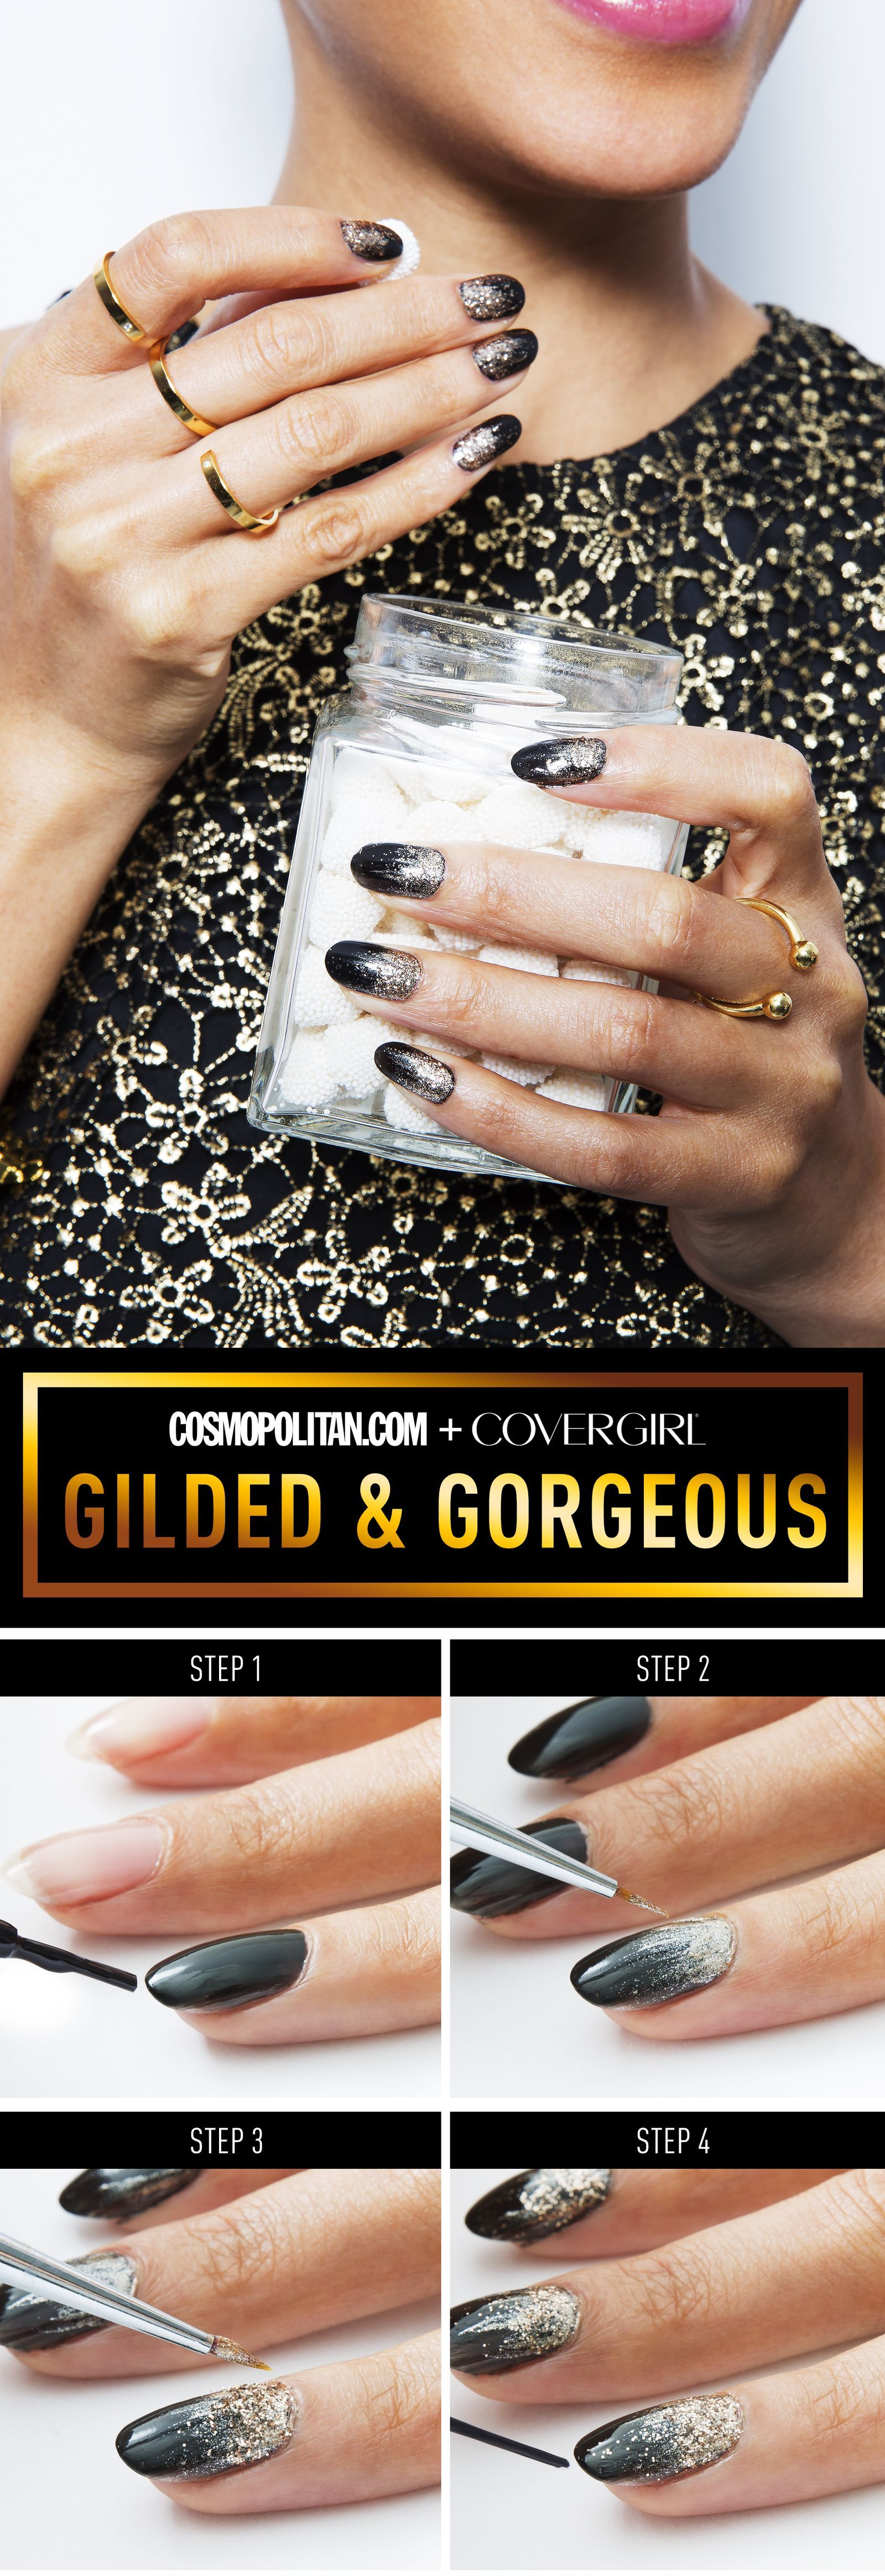 4 Stunning Nail Art Looks Perfect for New Year's Eve #nailnewyears